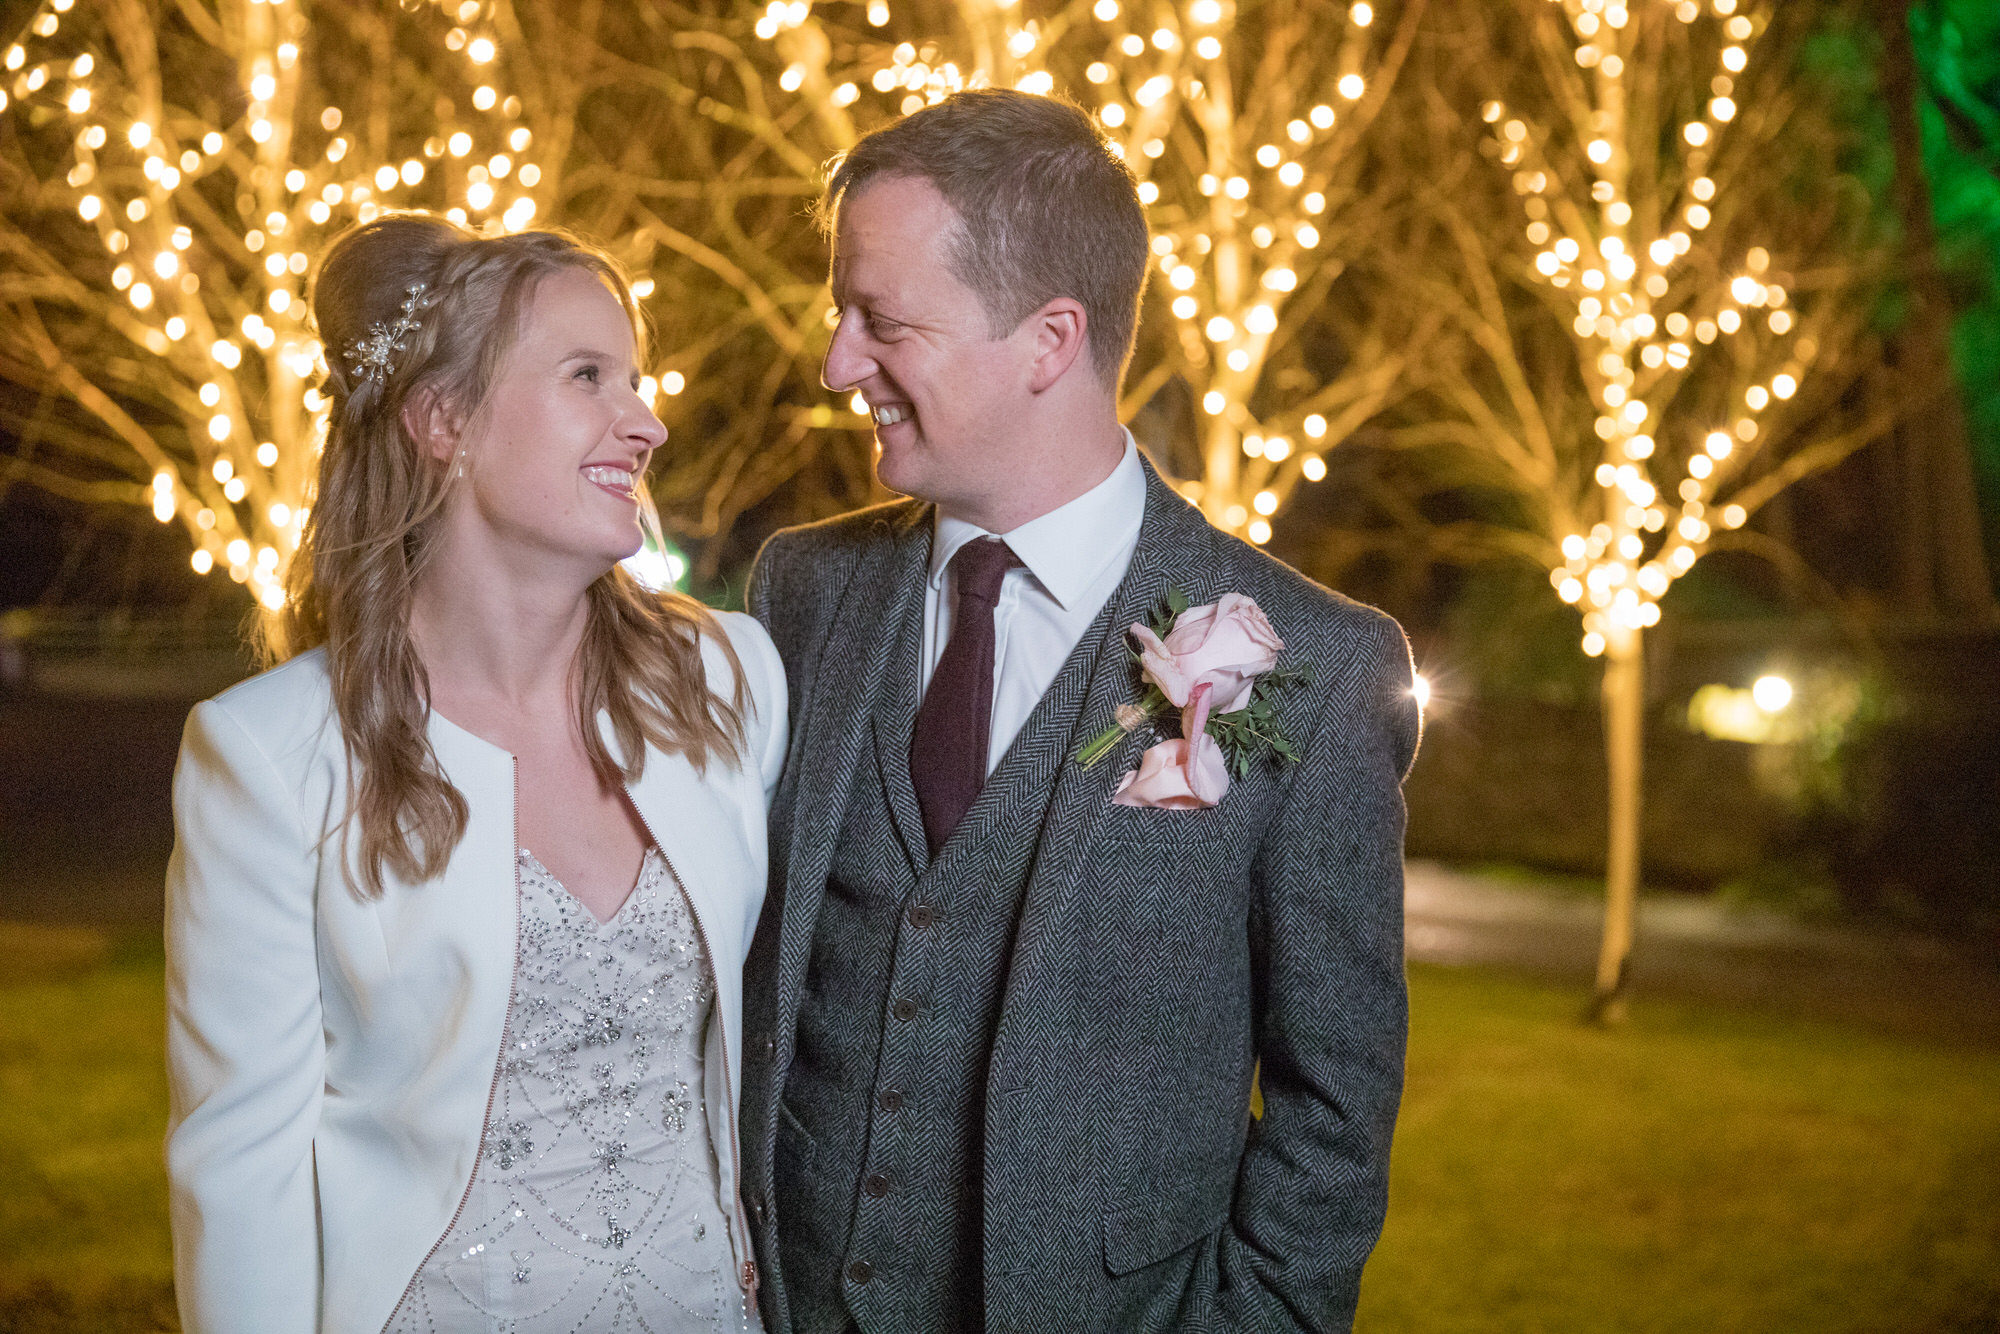 48 bride groom with Christmas fairy tree lights kingscote barn tetbury oxford wedding photographer 1